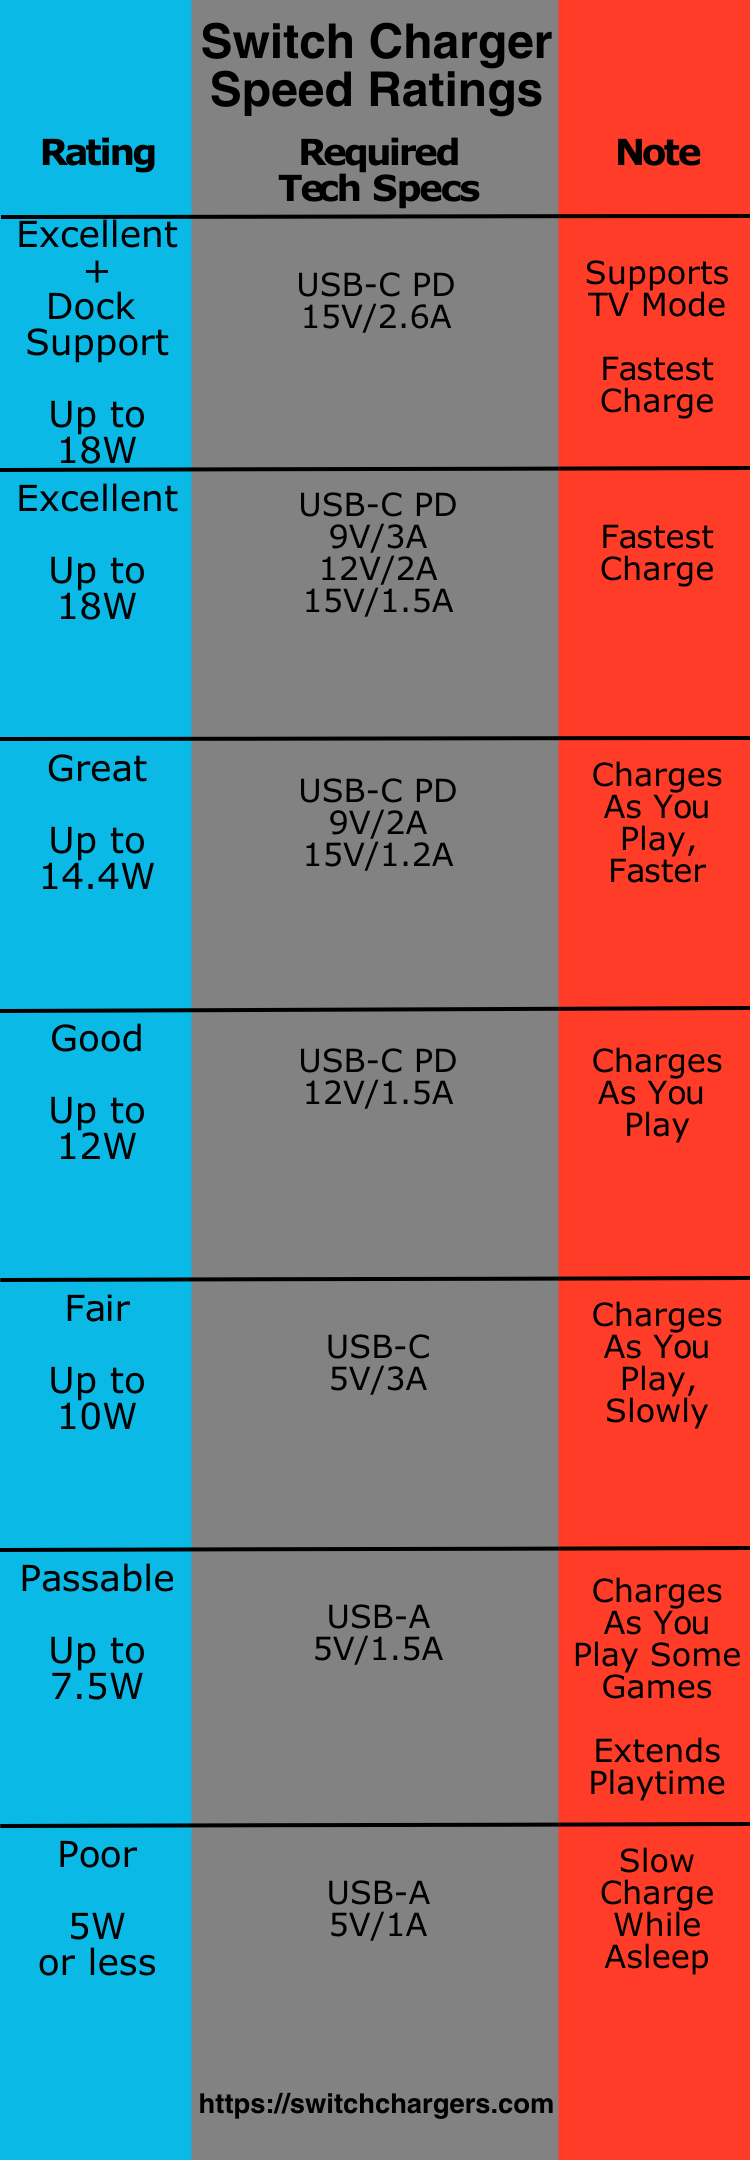 How Nintendo Switch Charging Works | Switch Chargers